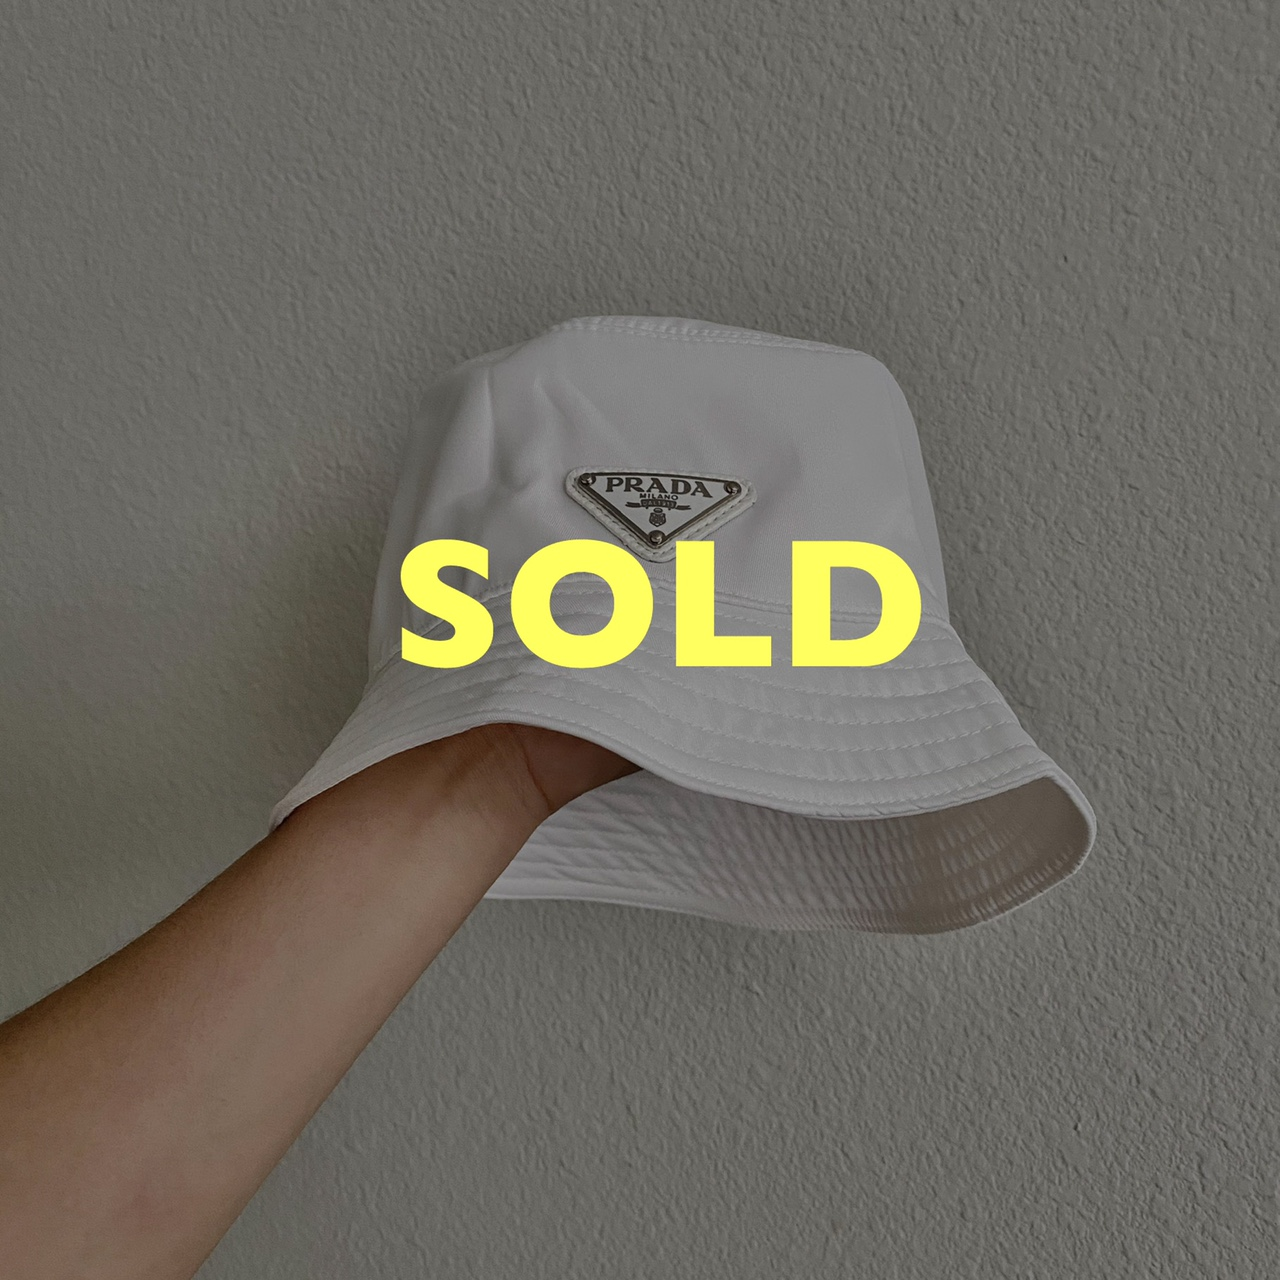 Product Image 1 - DO NOT PURCHASE  THIS IS UP